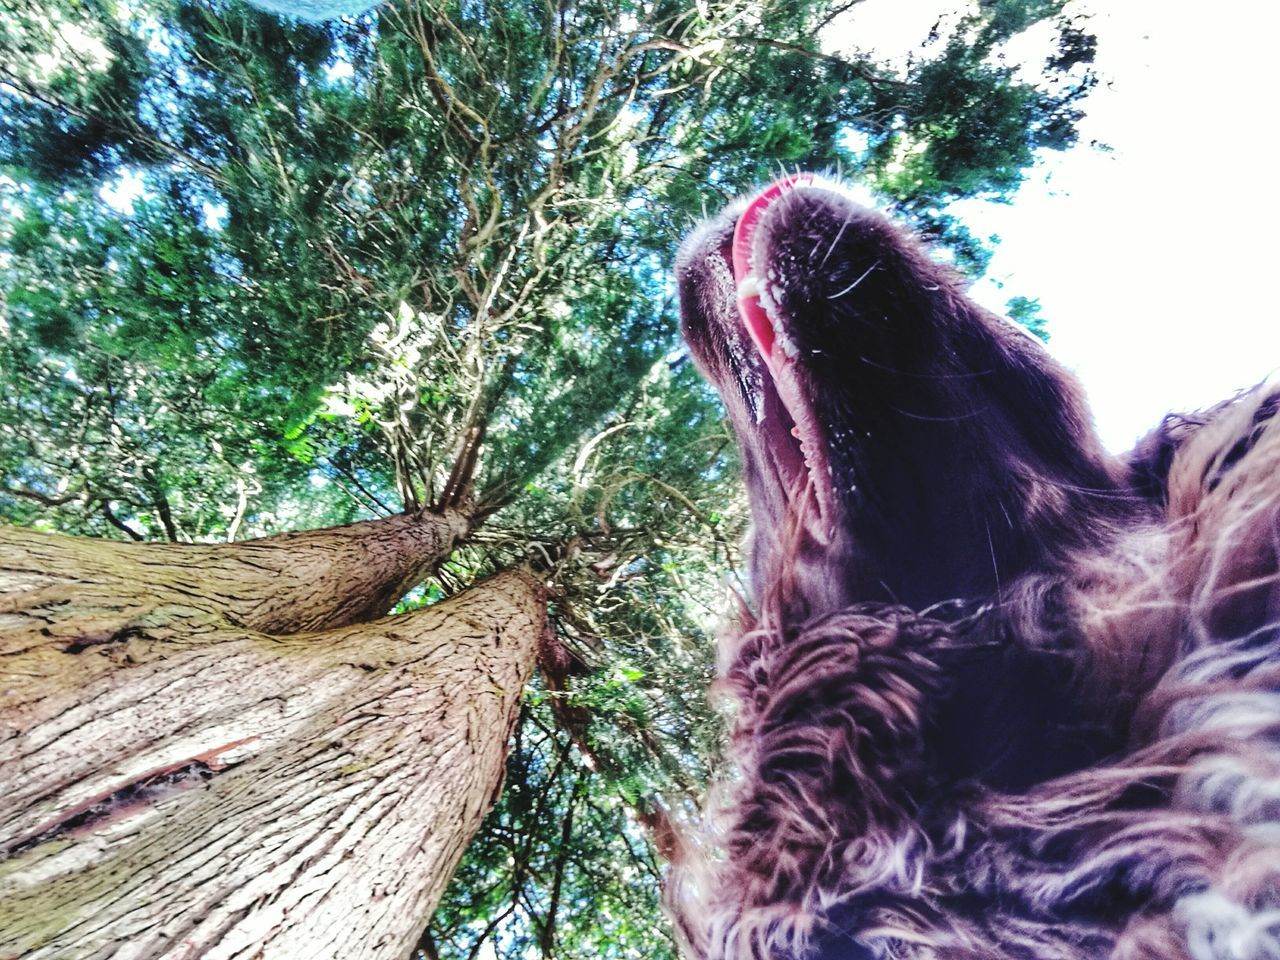 tree, one animal, animal themes, mammal, tree trunk, no people, wood - material, day, outdoors, nature, domestic animals, close-up, sky